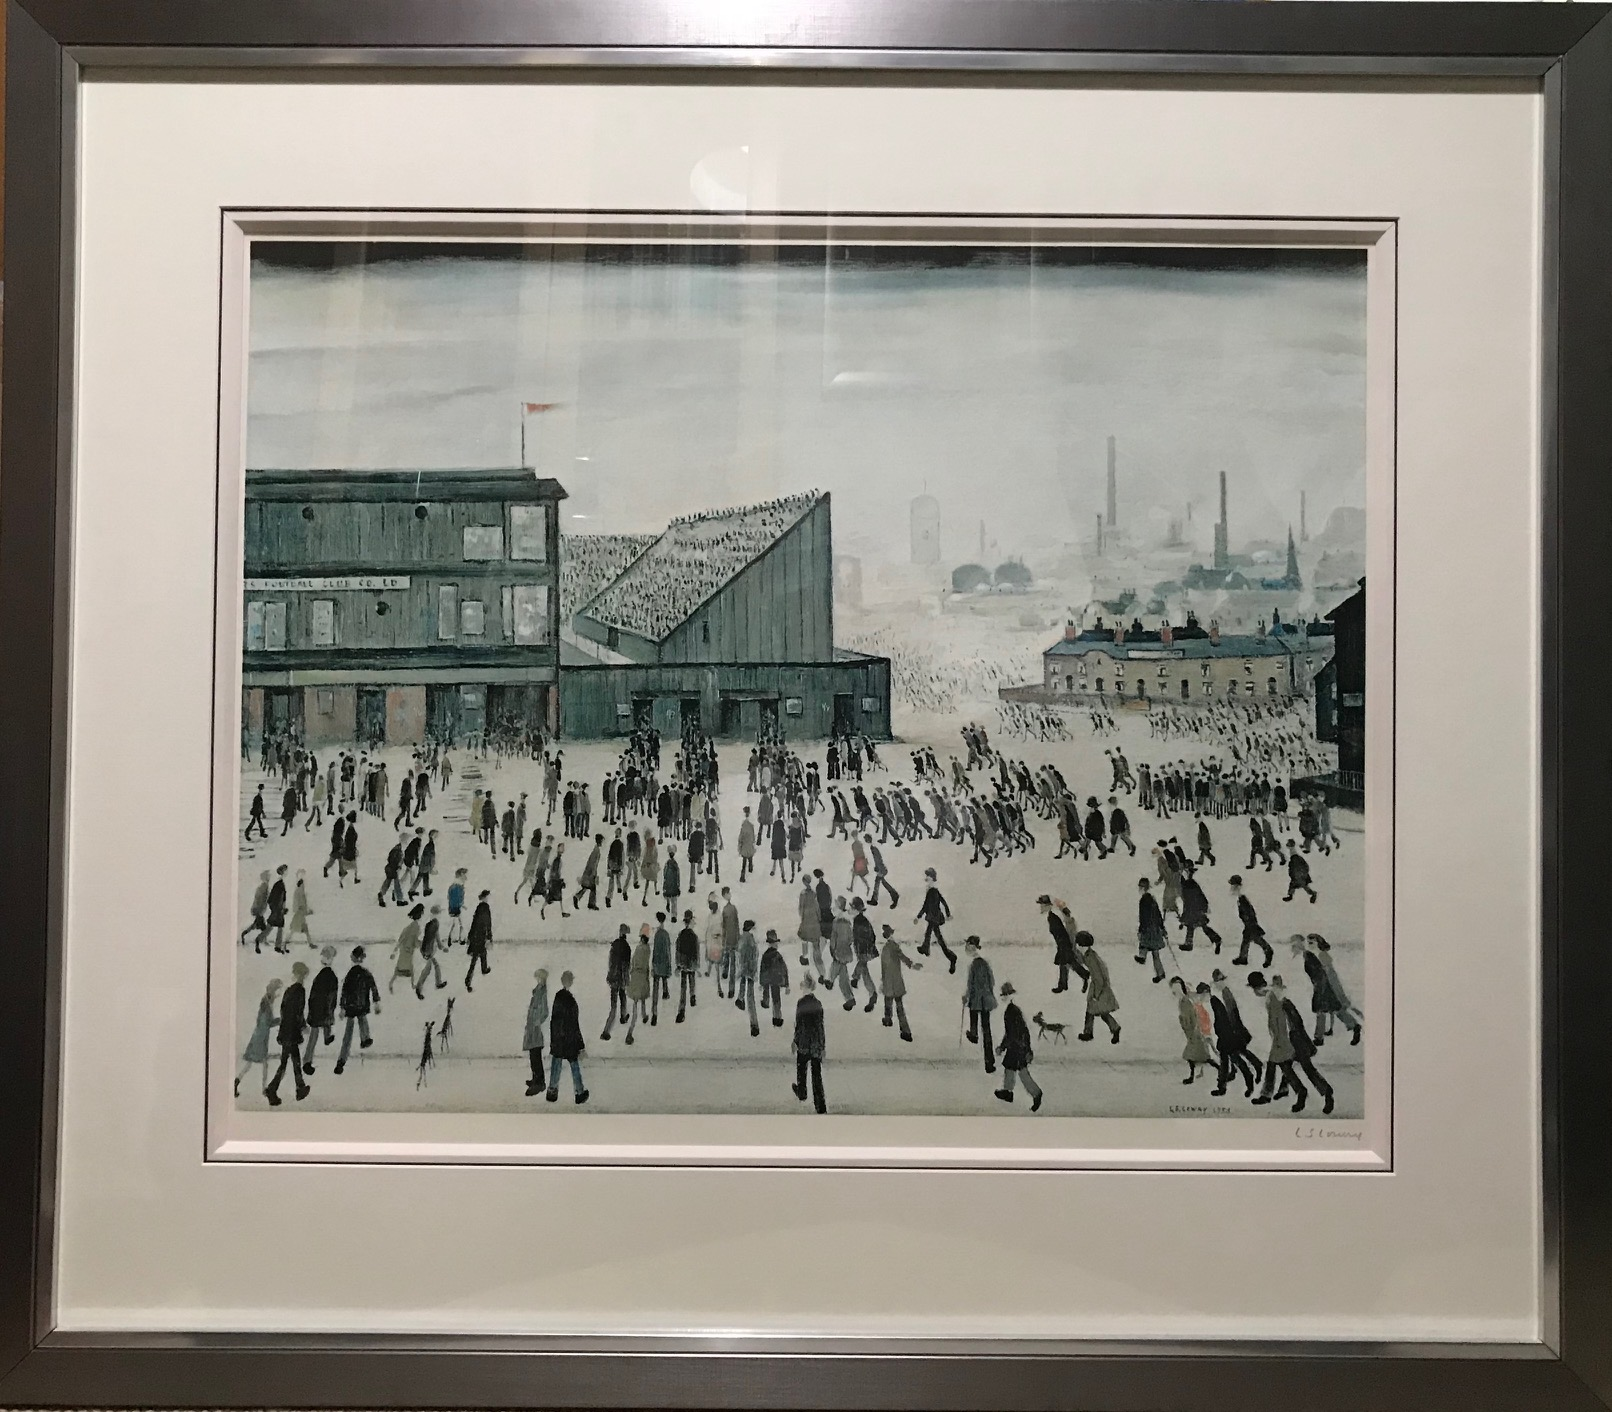 Going to the match artwork by Laurence Stephen Lowry - art listed for sale on Artplode